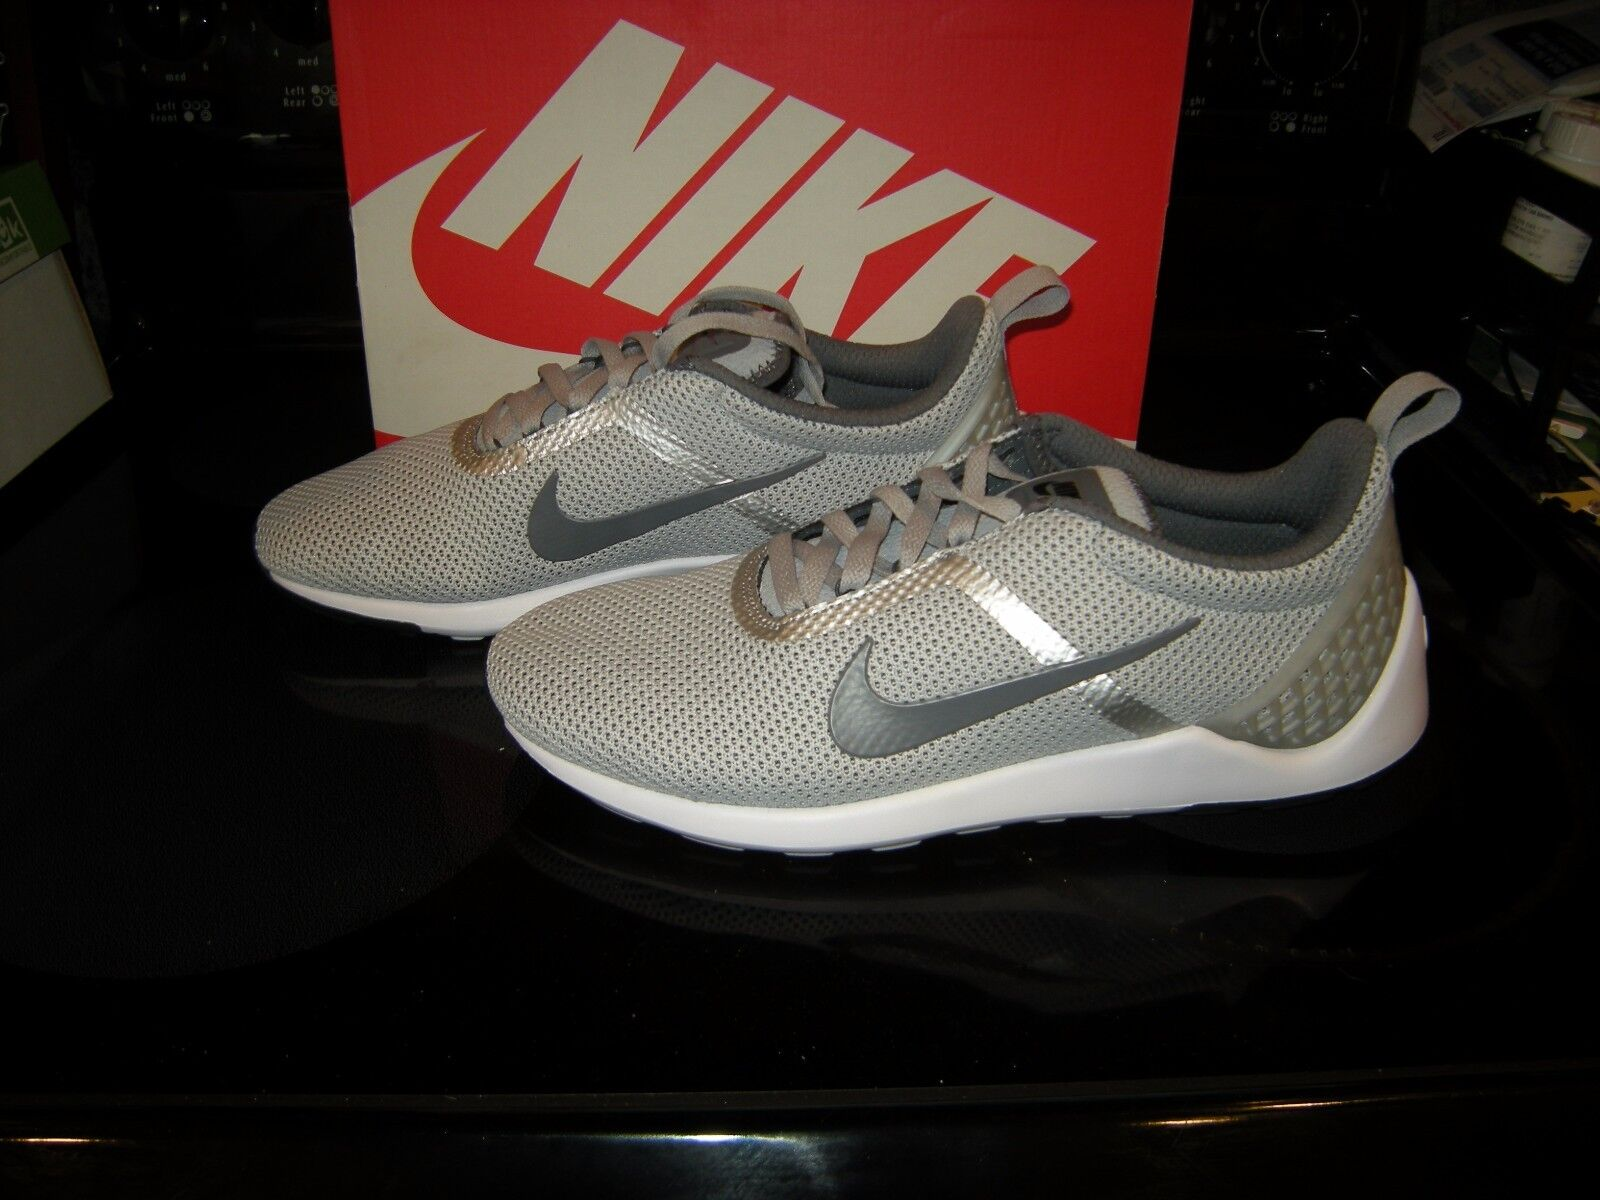 Brand New Mens Two Tone Gray Nike Shoes, Lunarestoa 2 Essential Tennis Shoes, Nike Size 11 33f68a